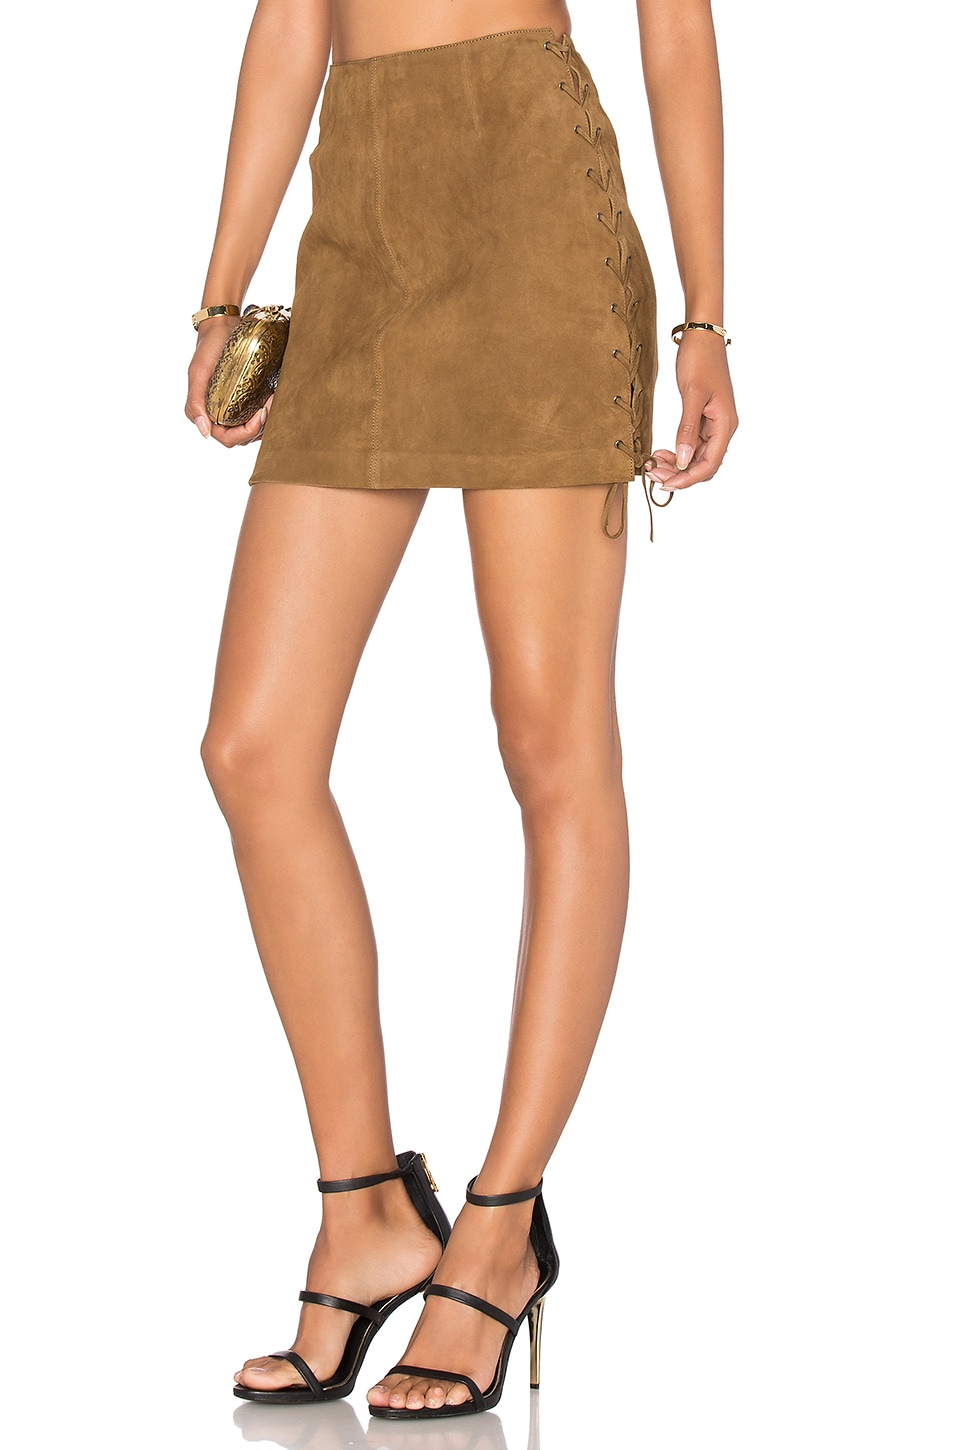 LPA Skirt 56 in Tan